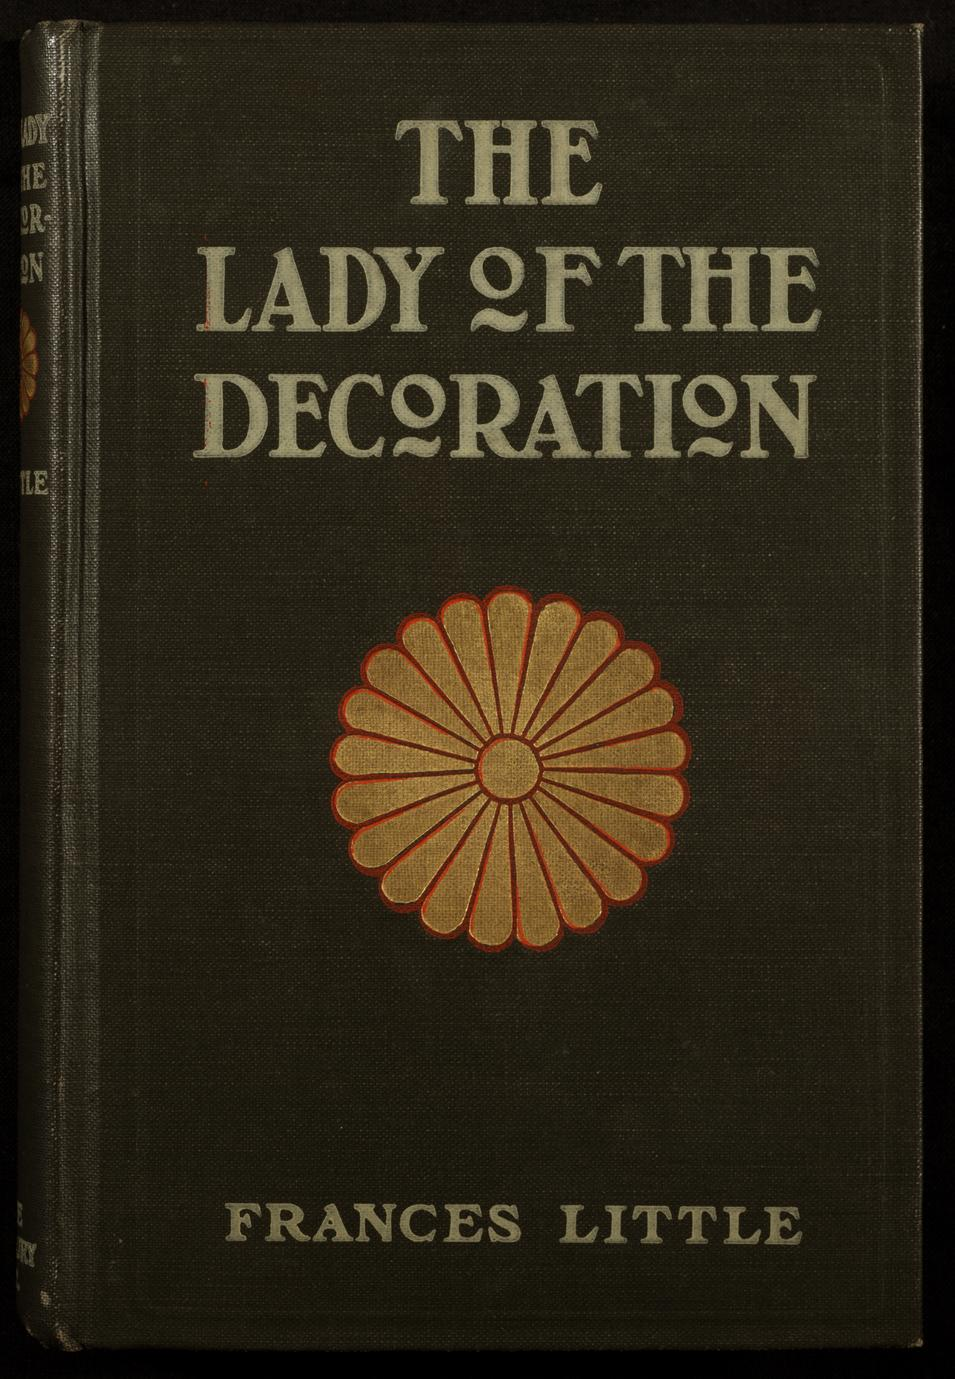 Lady of the decoration (1 of 2)